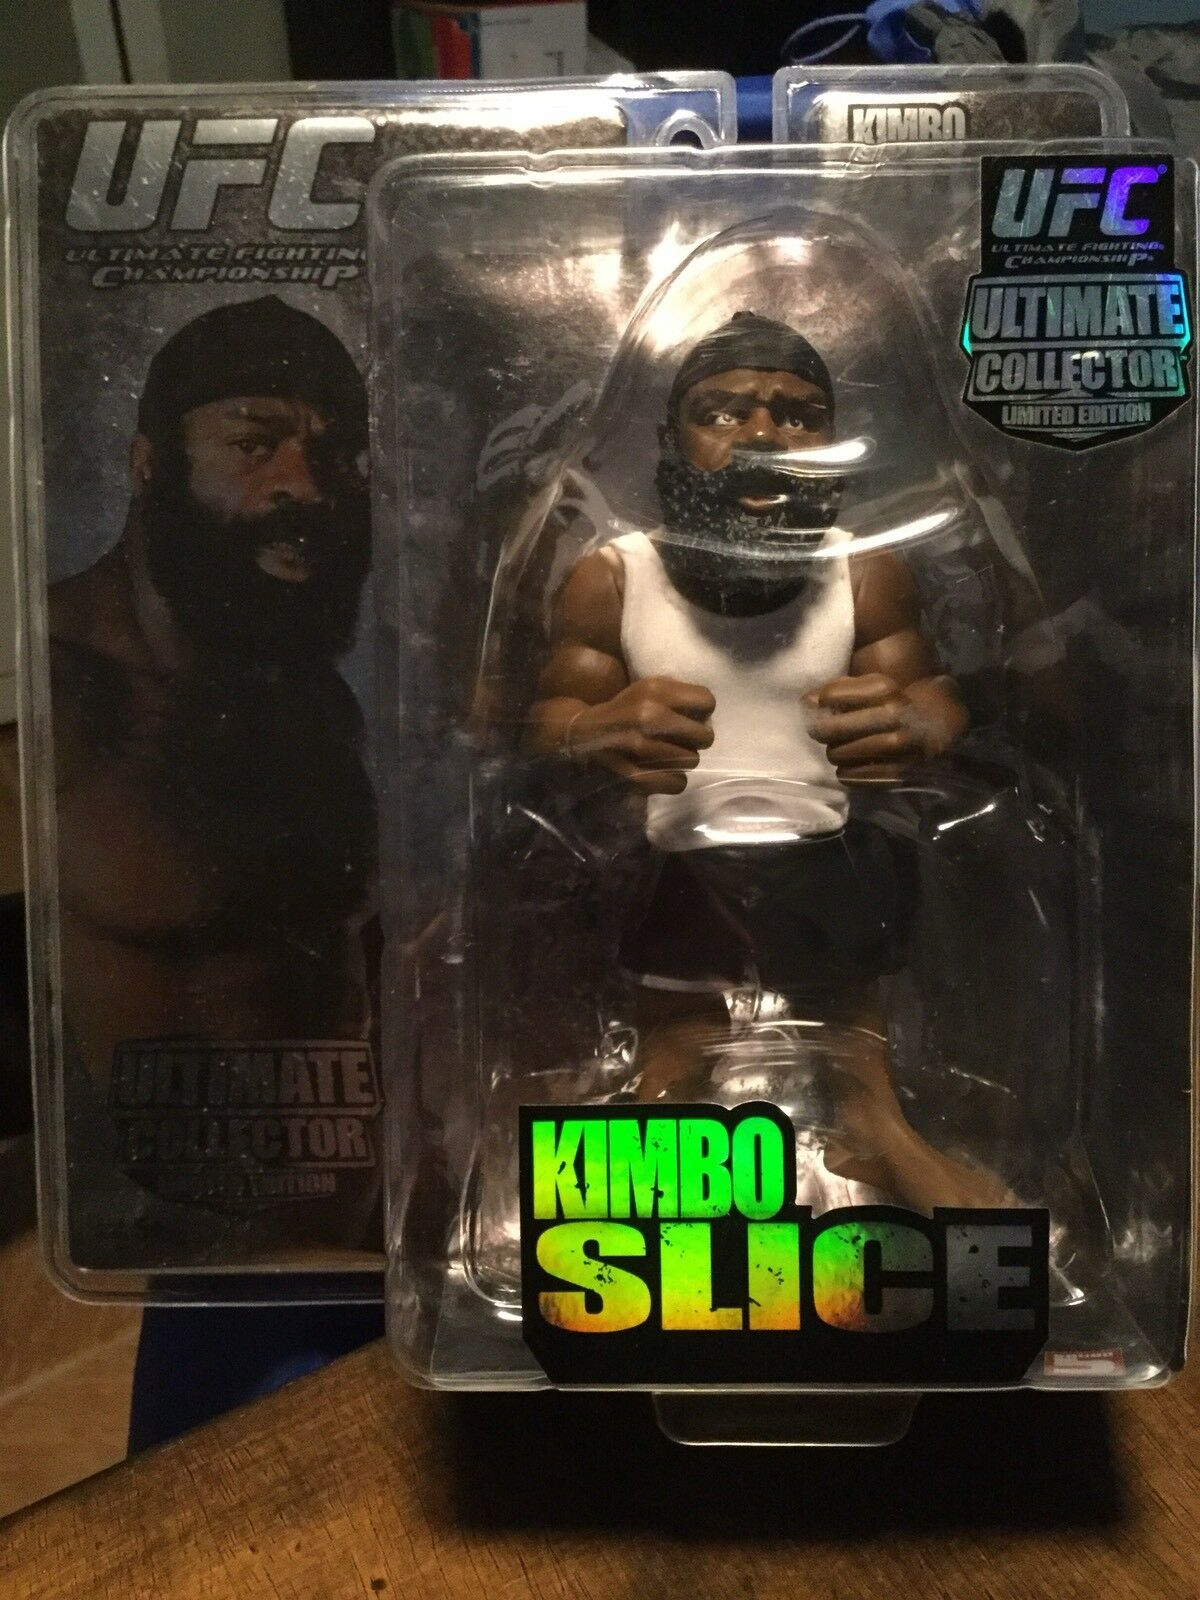 Kimbo Slice Round 5 Mma Collector Limited Edition Niedrig Number 3000